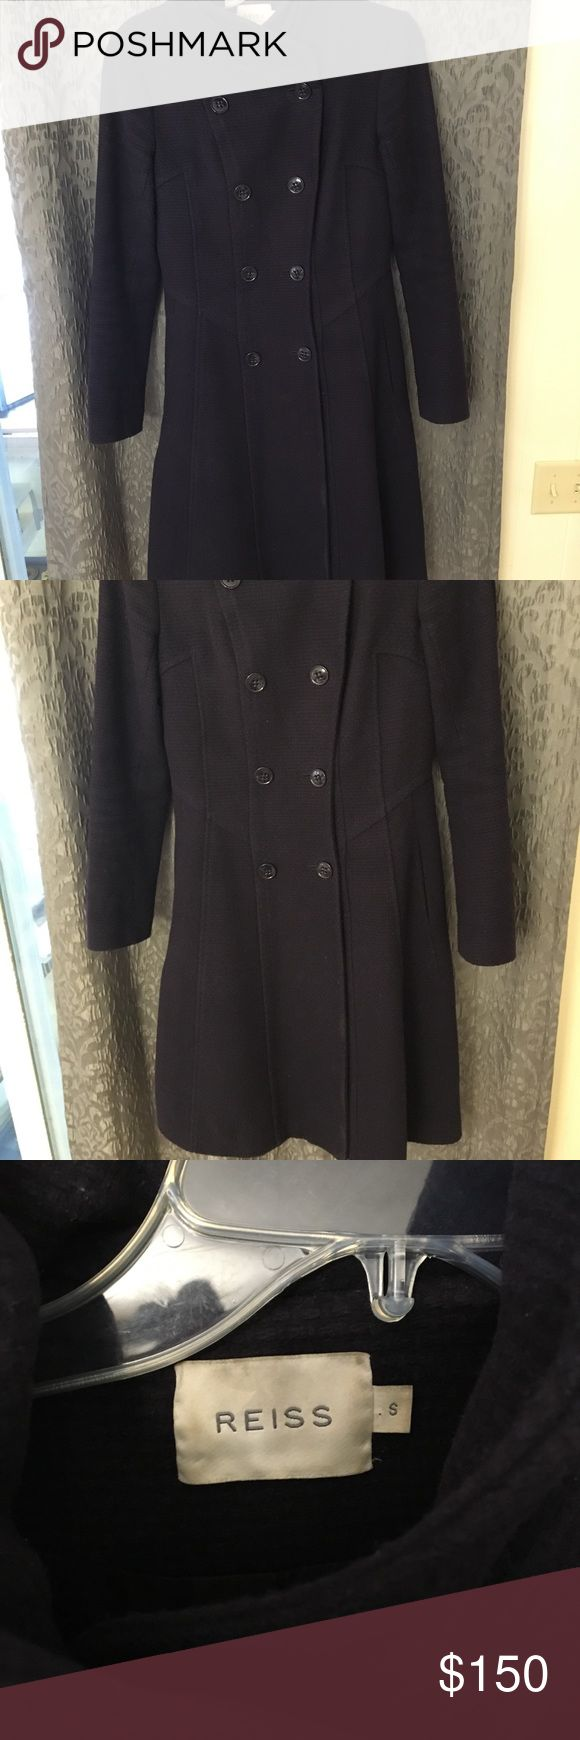 Reiss knee length women's dress coat small Such a flattering winter dress coat. Fit and flare style, size small. Does have discoloration on the inside liner but outside is in excellent shape. Reiss Jackets & Coats Pea Coats